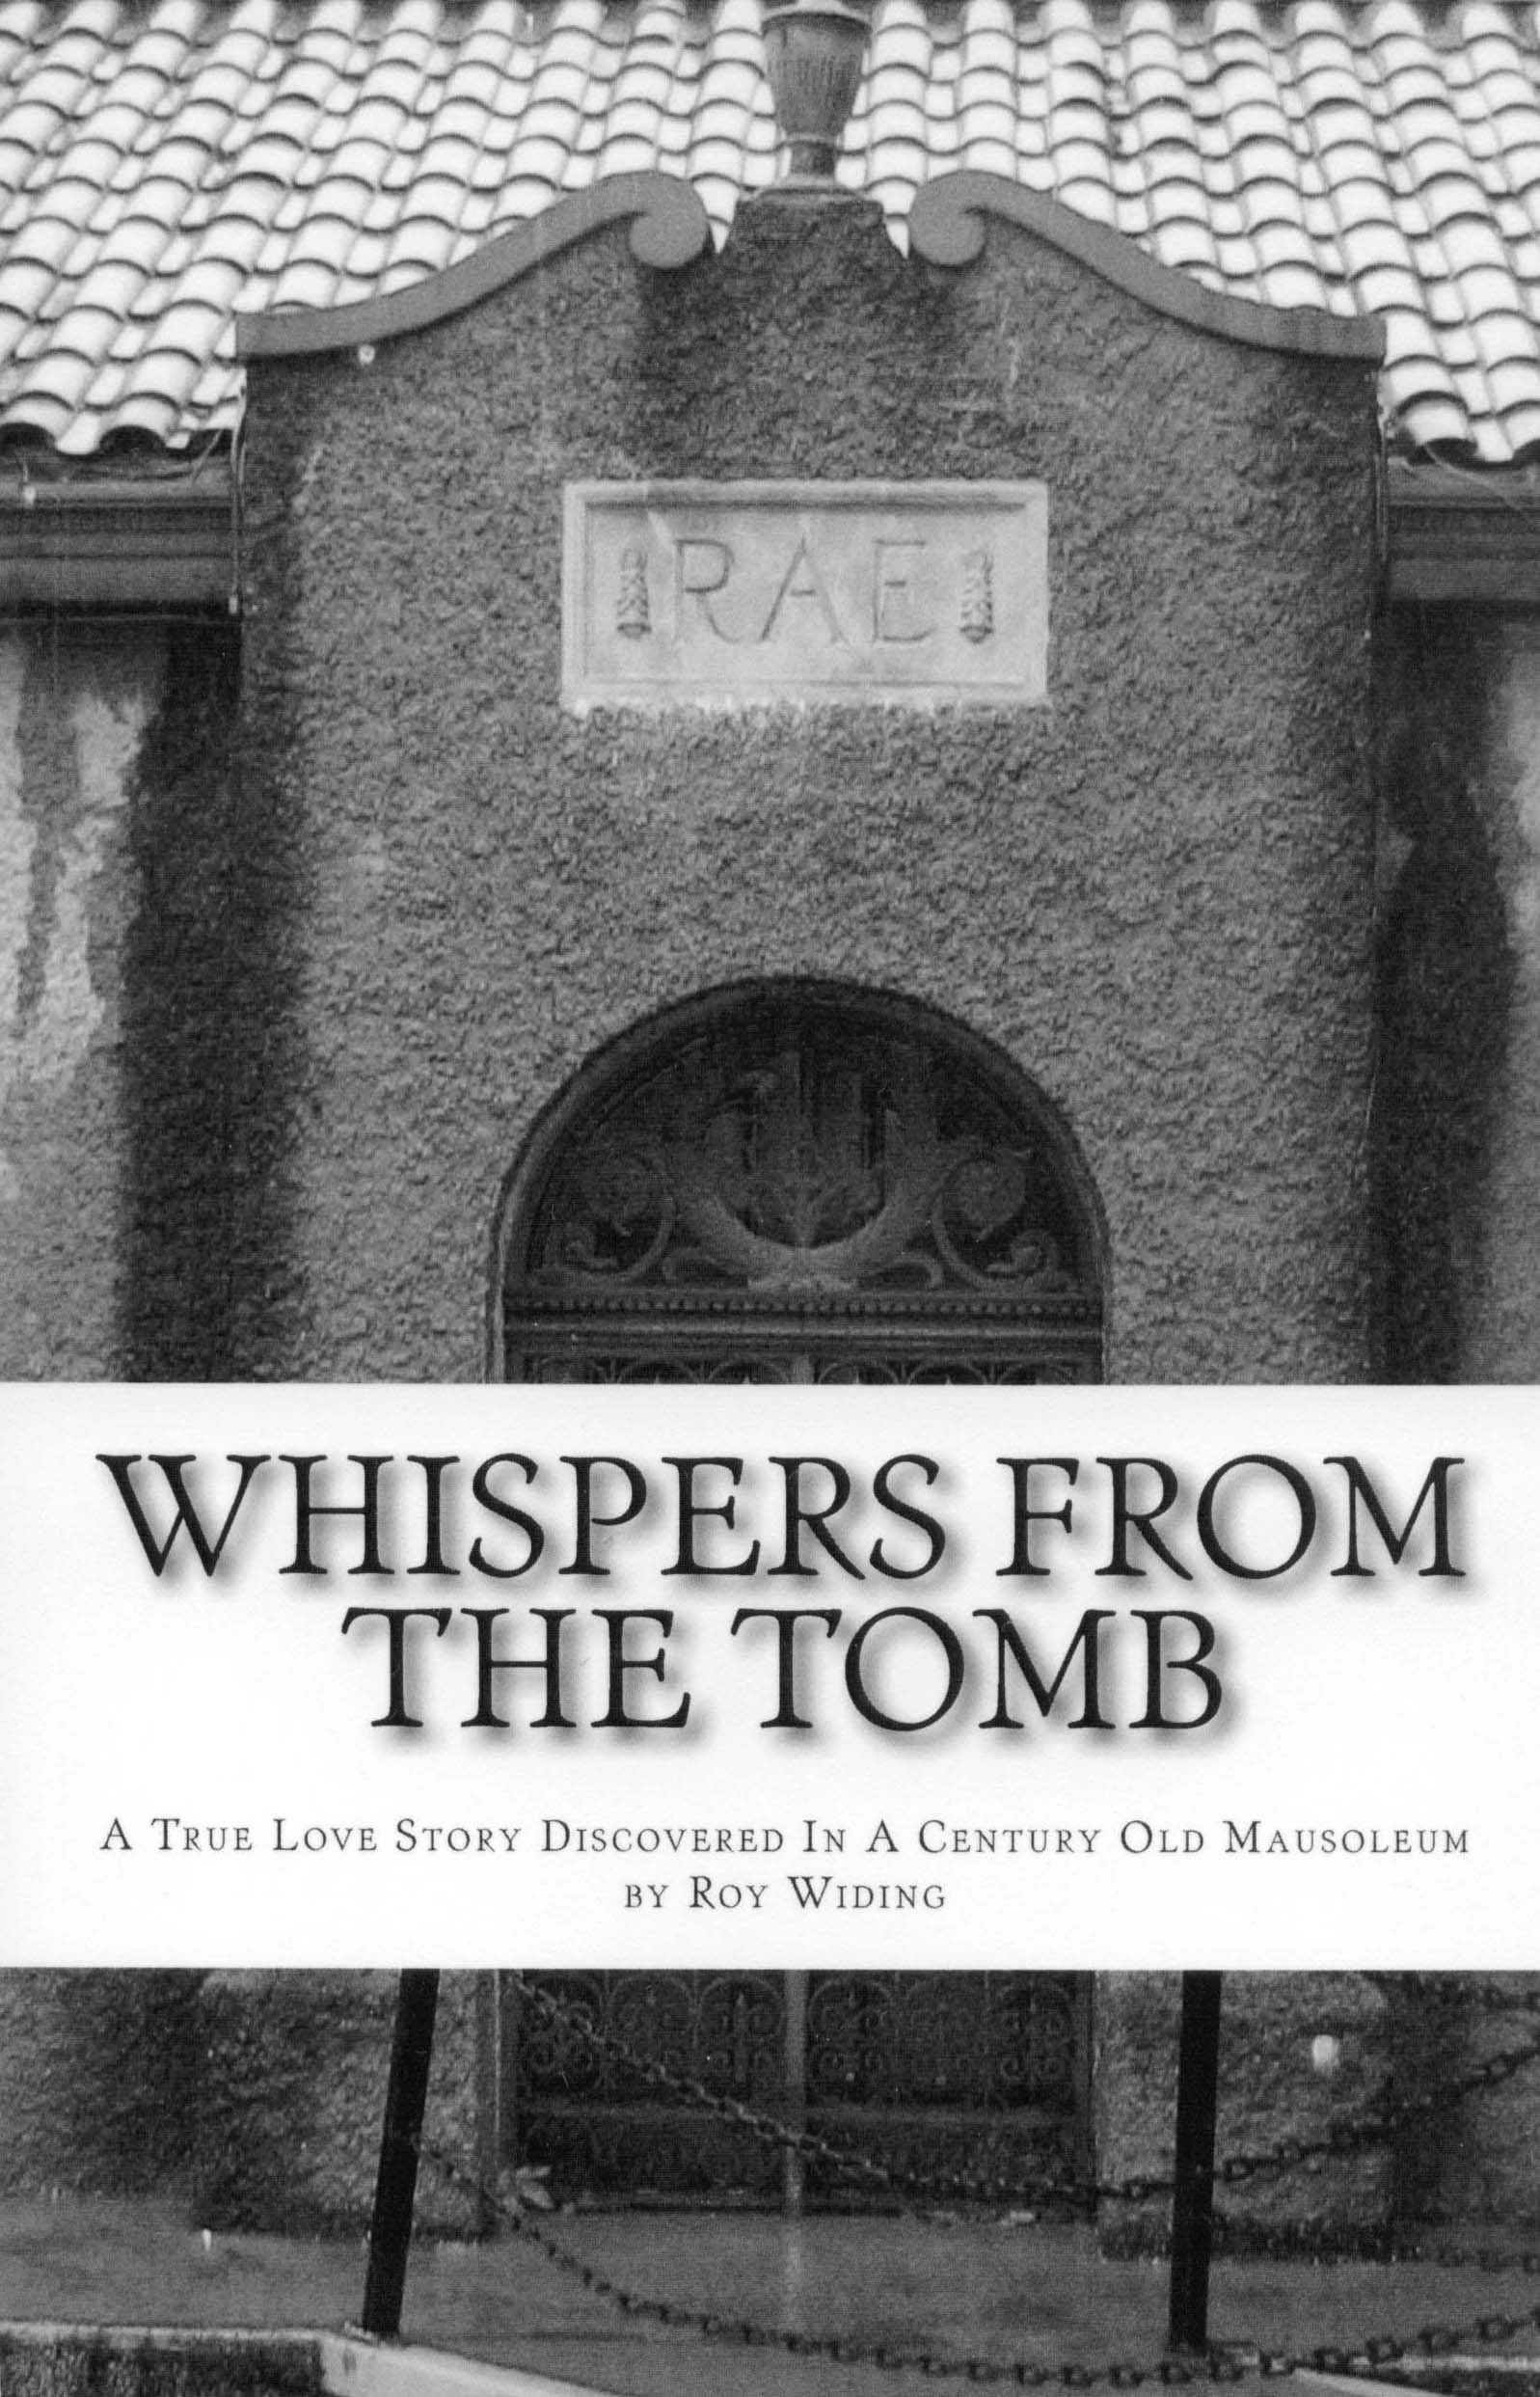 Oregon, History, Portland, Whispers From The Tomb, Non-Fiction, Biography, Romance